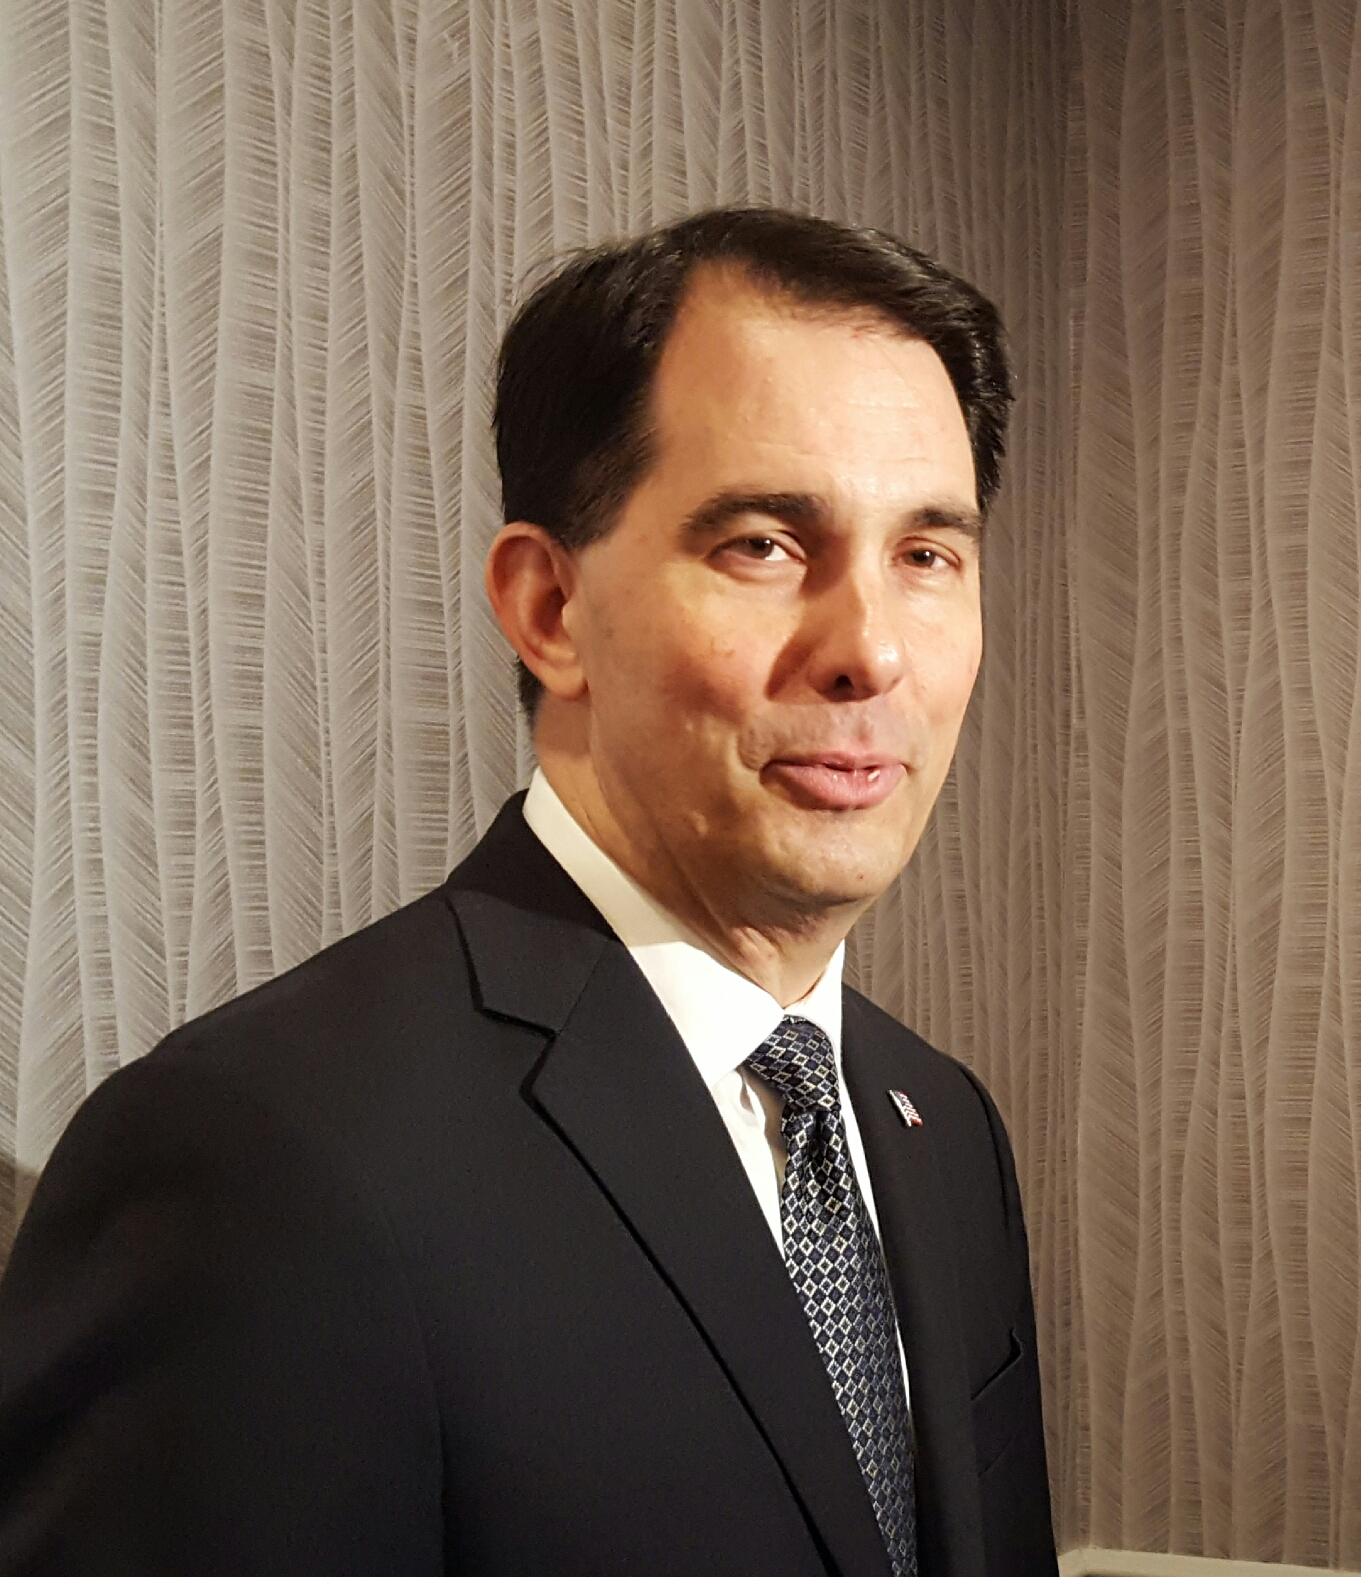 Walker announces approval for Wisconsin's Reinsurance Program